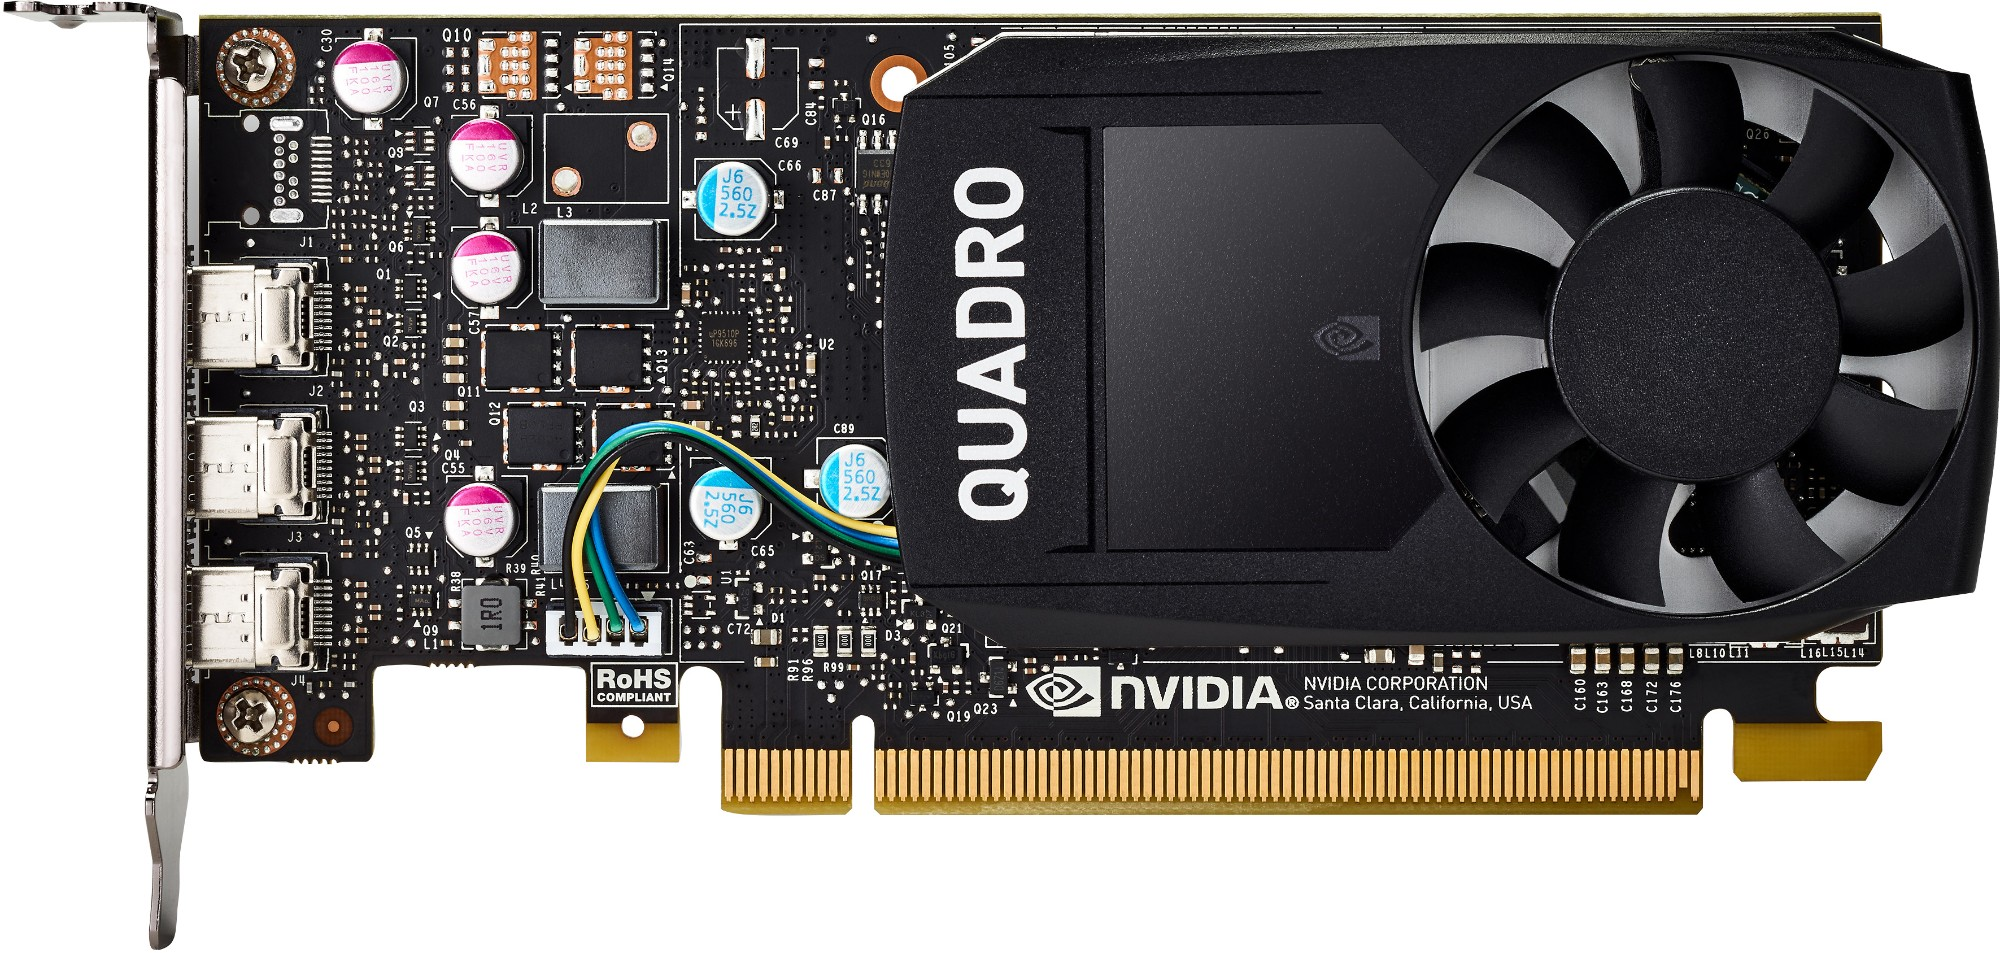 HP NVIDIA Quadro P400 2GB Graphics